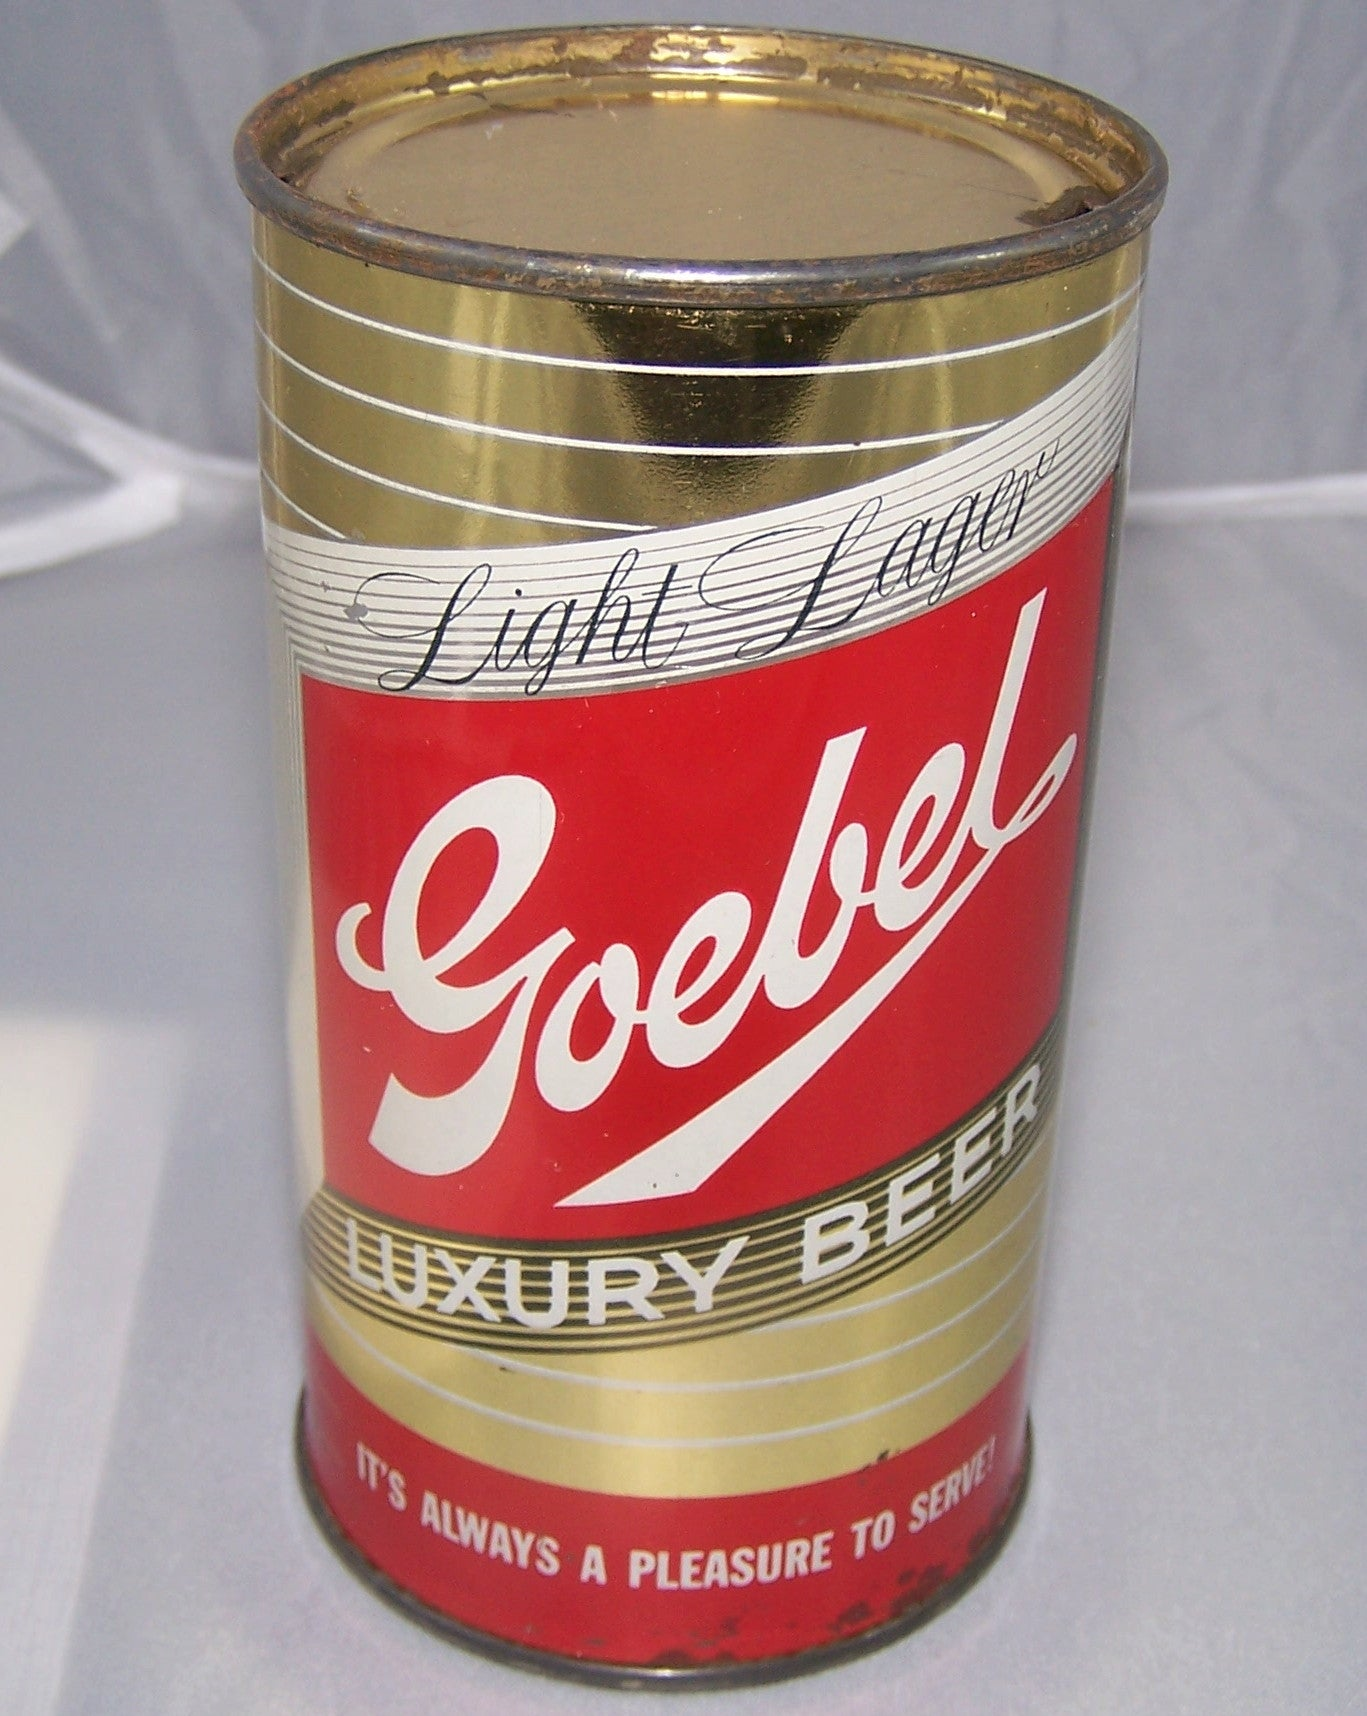 Goebel Luxury Beer, Oakland, USBC 70-26, Grade 1 to 1/1+ Sold 2/7/15